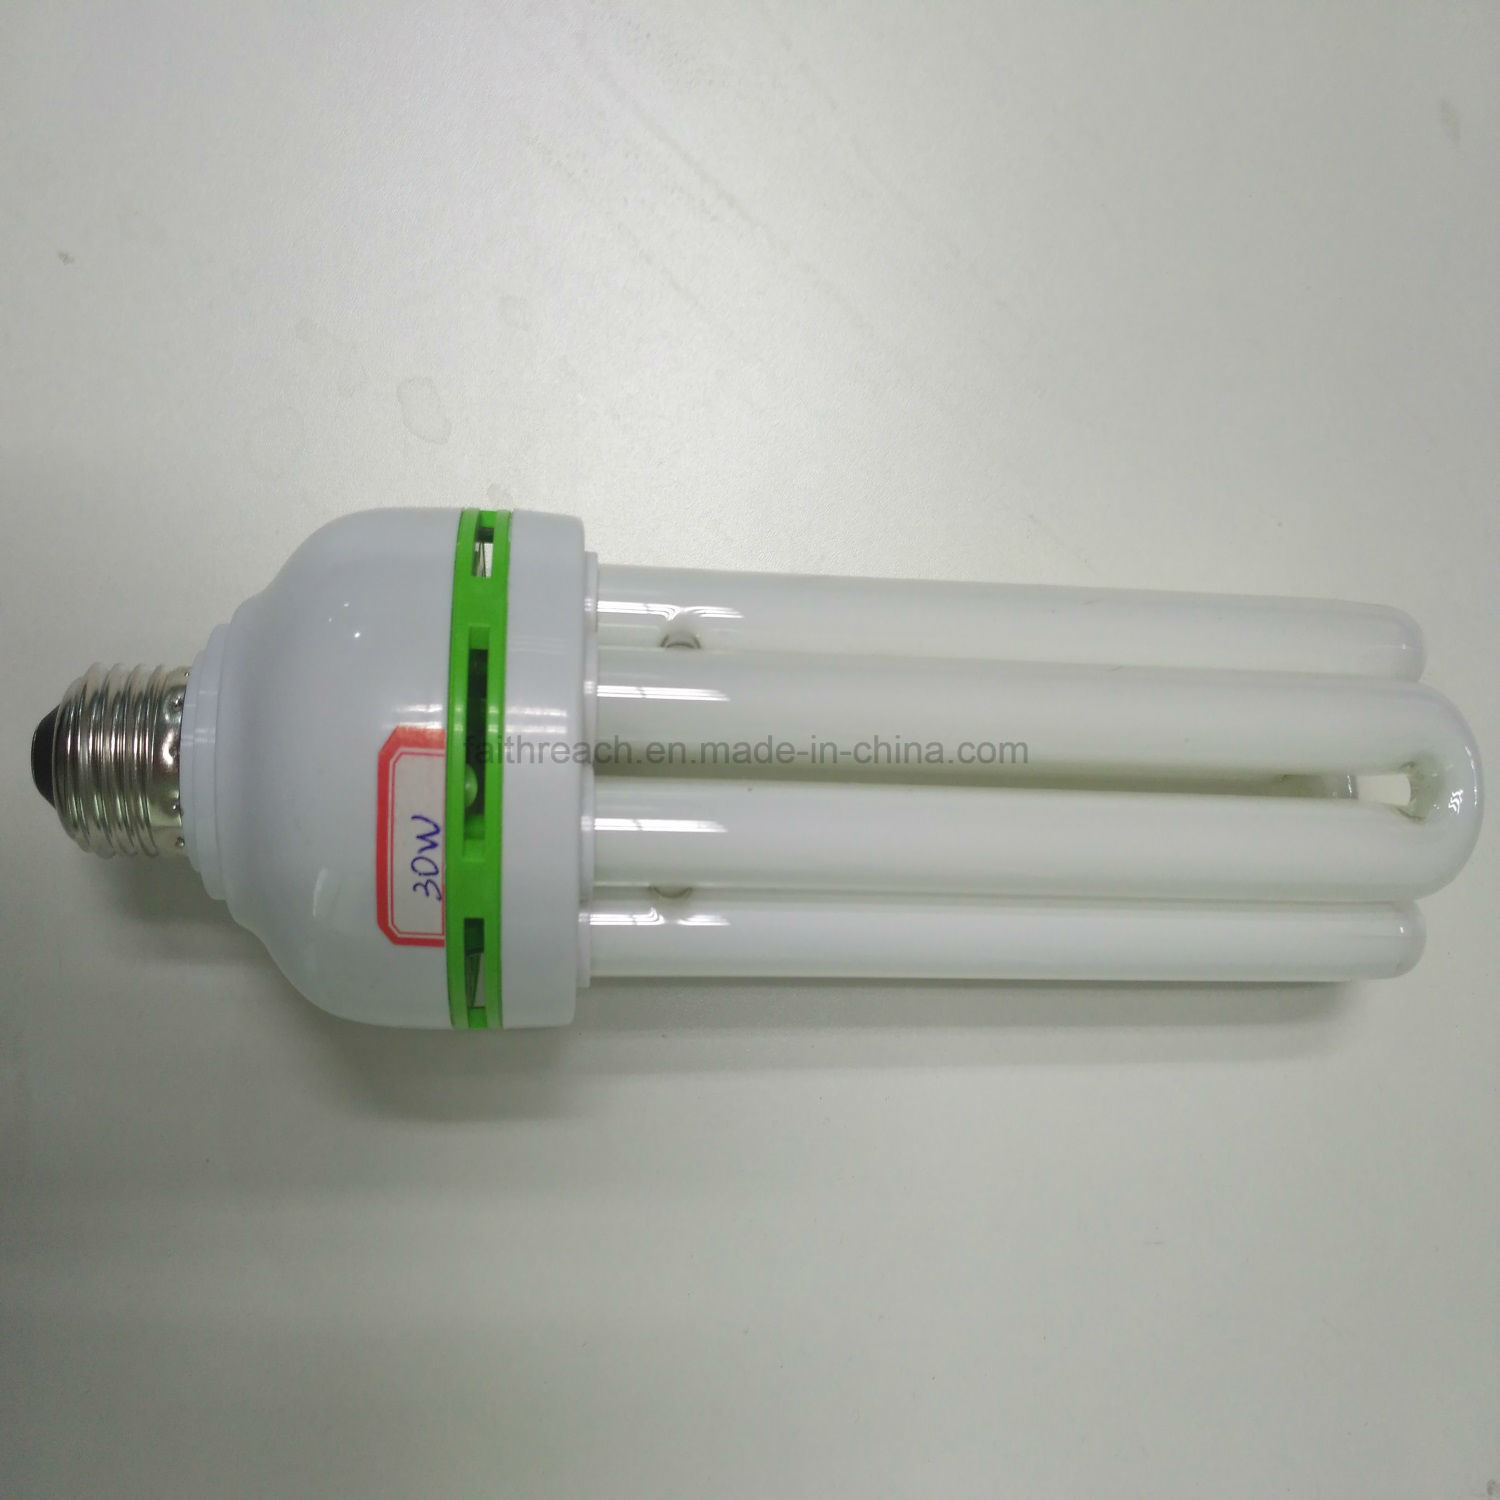 Export Products U Shape Energy Saving Light Lamp